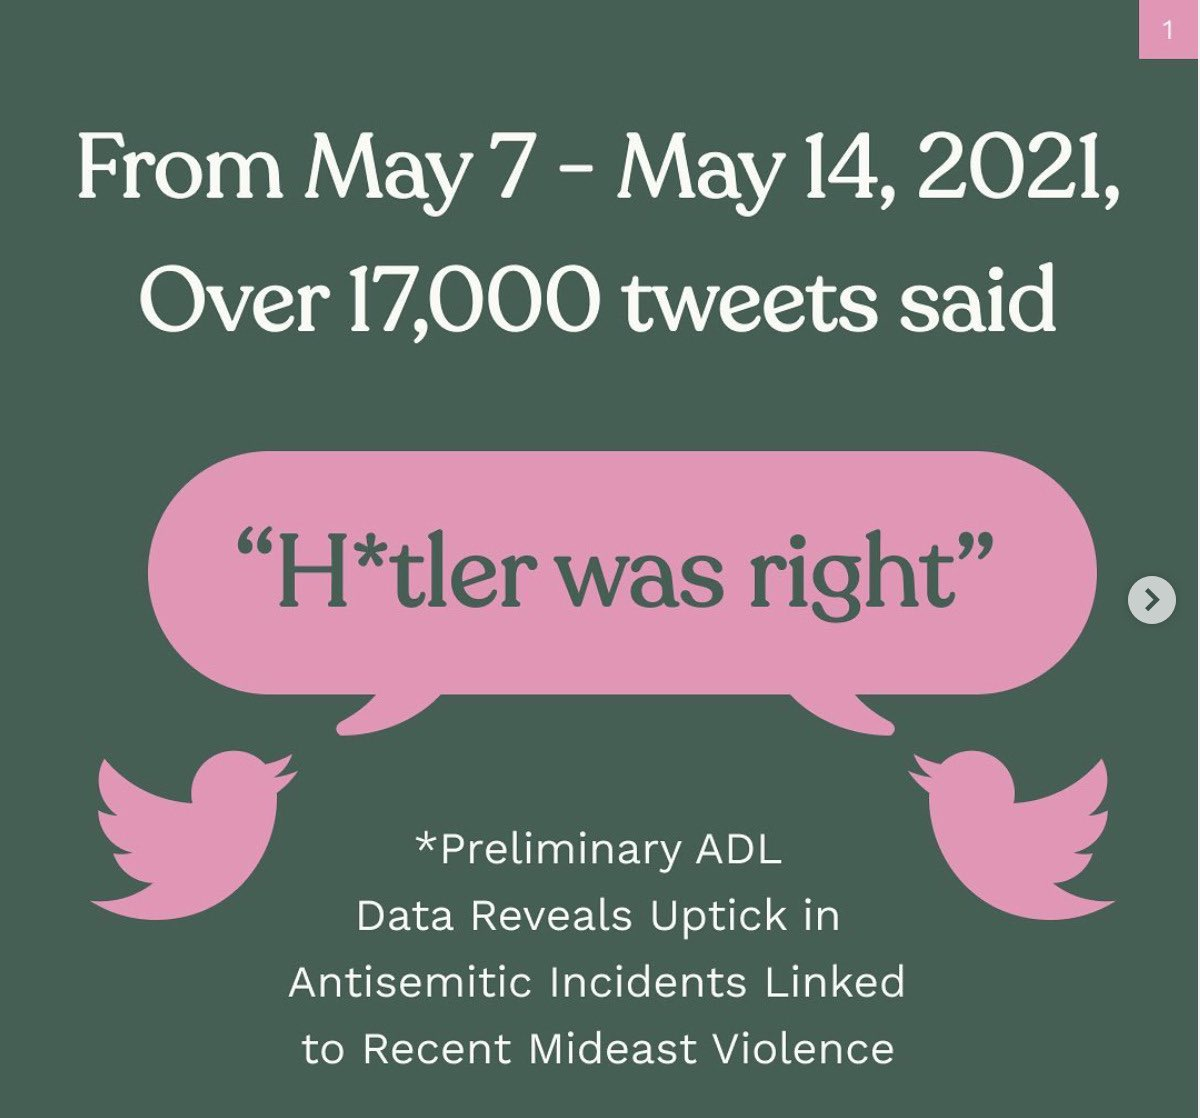 important, brief thread on antisemitism that only takes a couple minutes to read. educate yourselves!